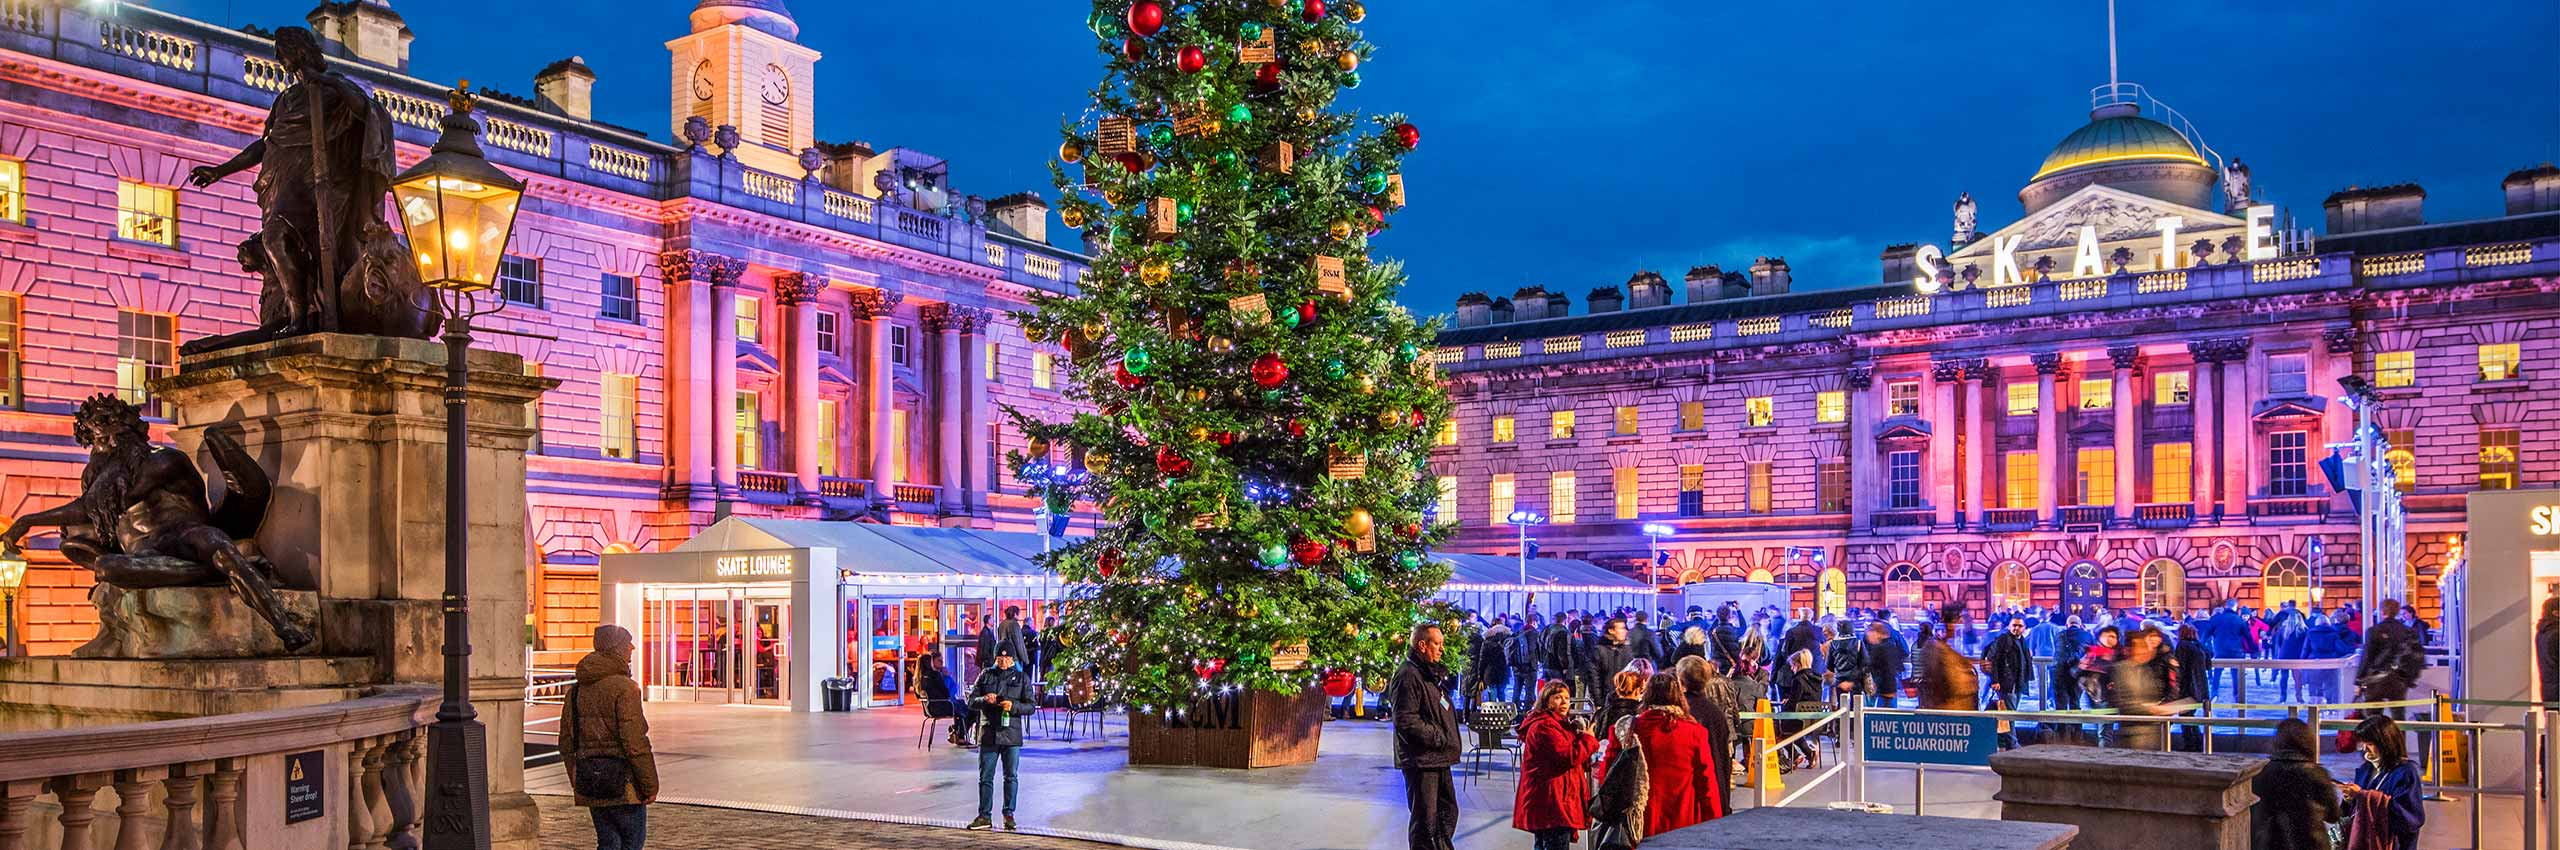 BVH-20643885 | UK/London, Ice Rink in the Courtyard of Somerset House on The Strand in December | © Reinhard Schmid/4Corners